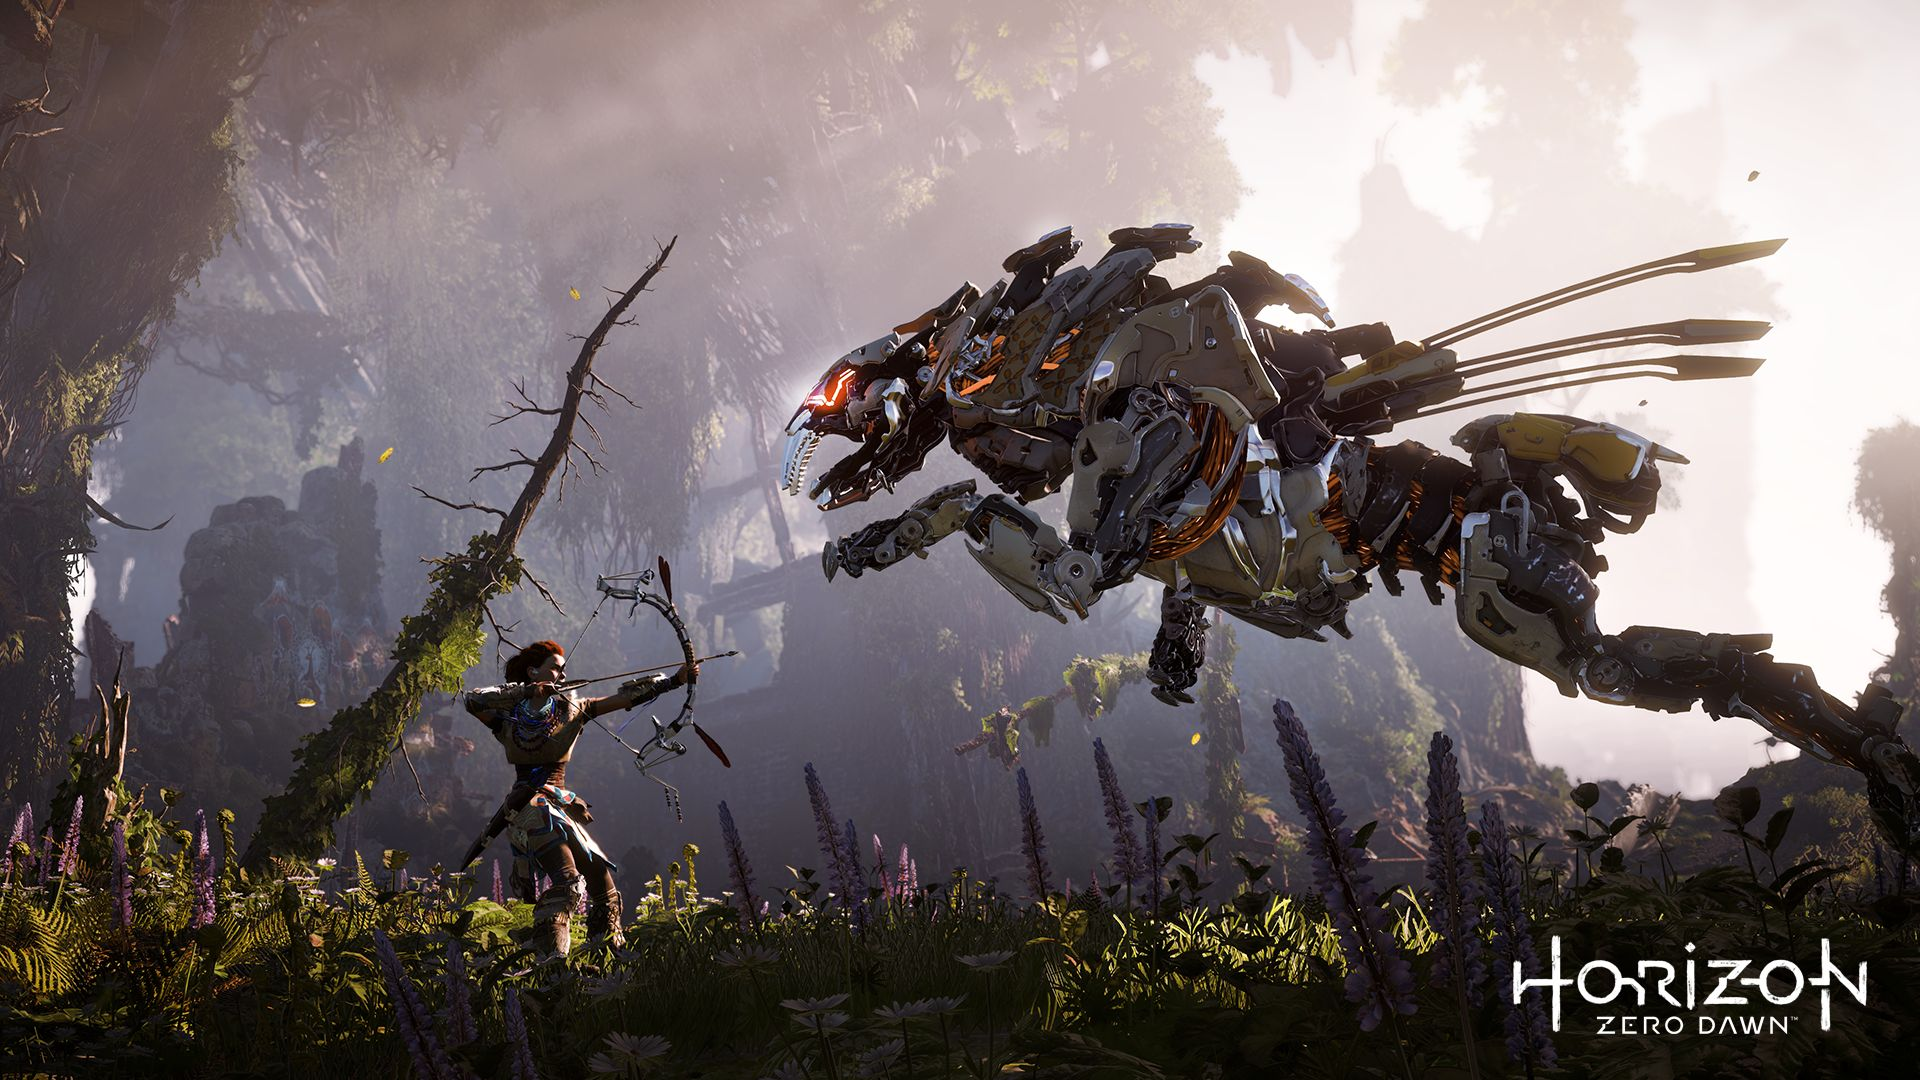 Horizon-Zero-Dawn-1